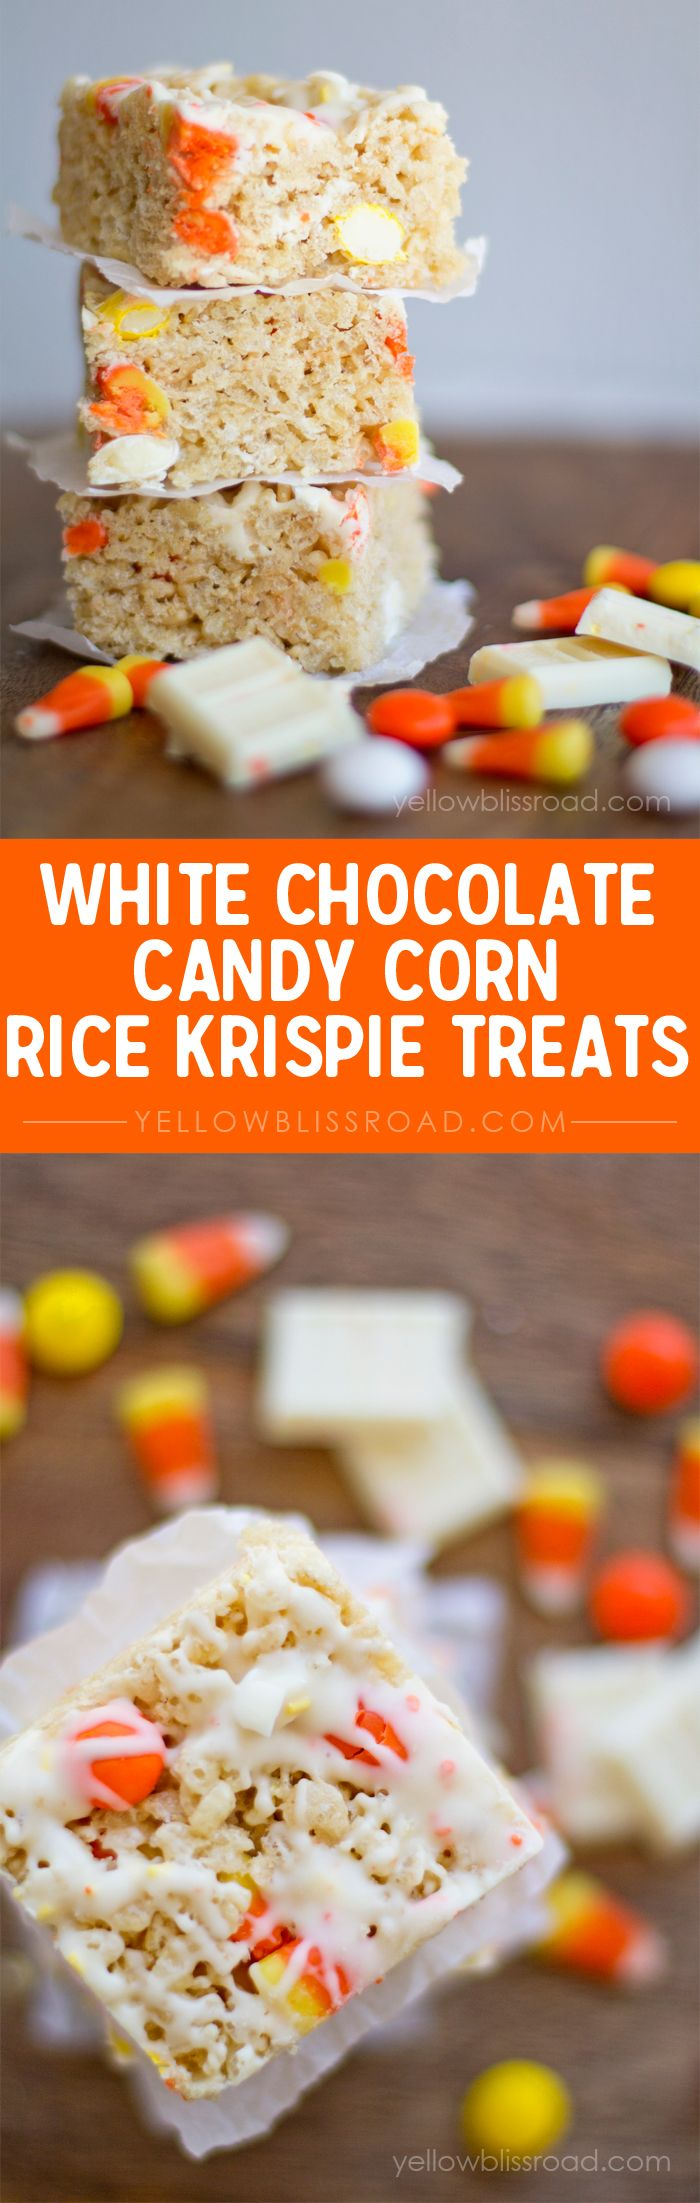 White Chocolate & Candy Corn Rice Krispie Treats - Perfect Fall or Halloween Treat!